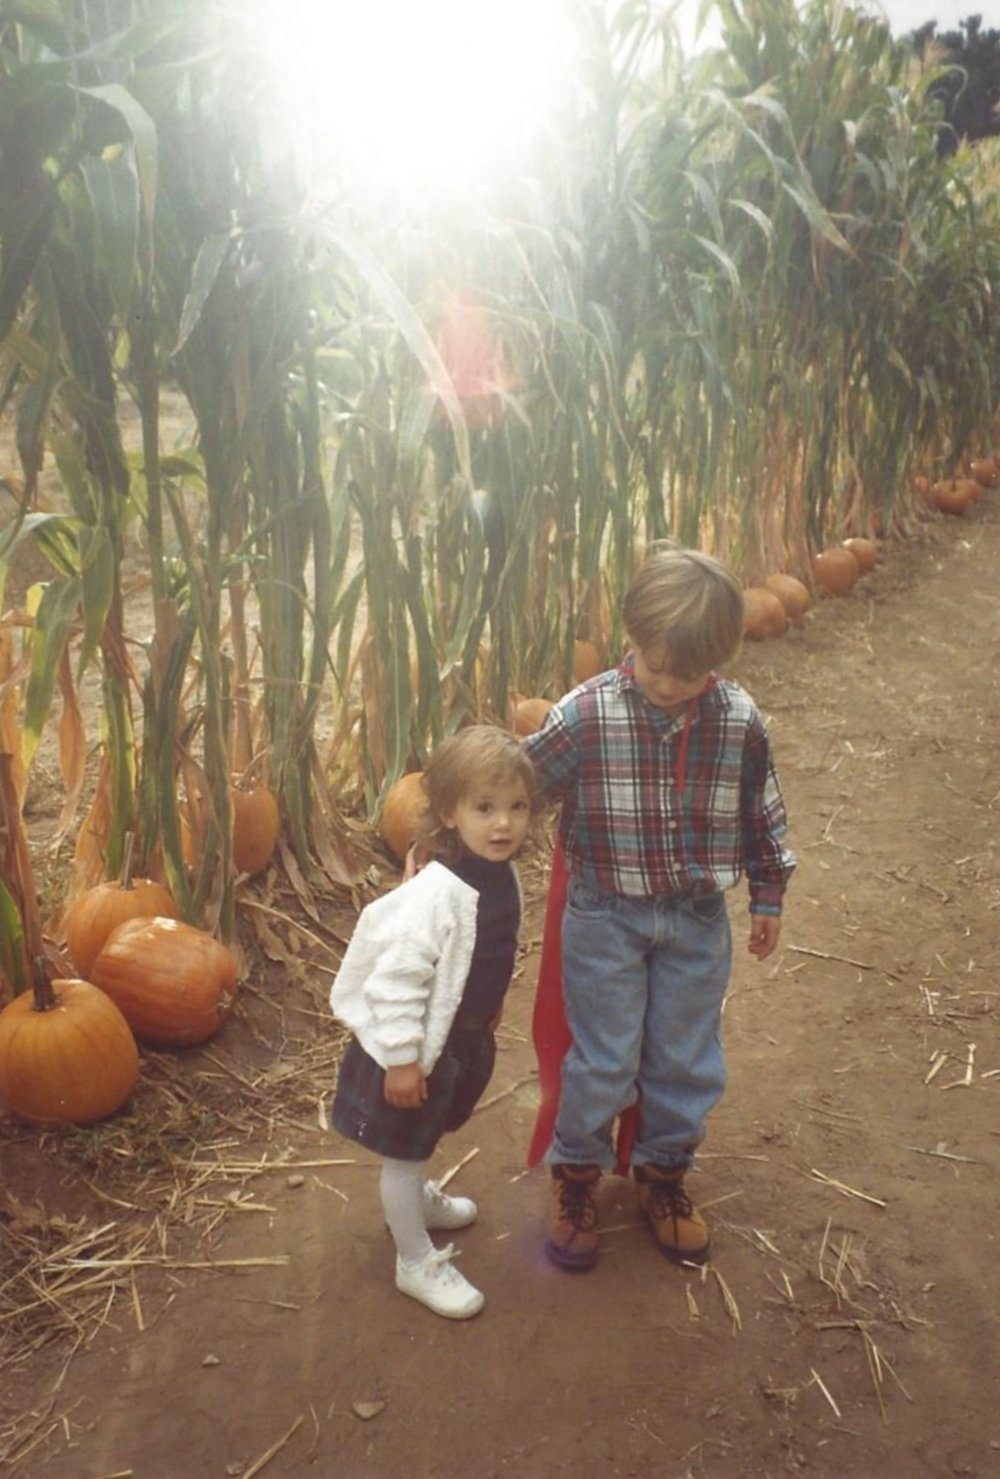 Me and my brother at the pumpkin patch, 1992